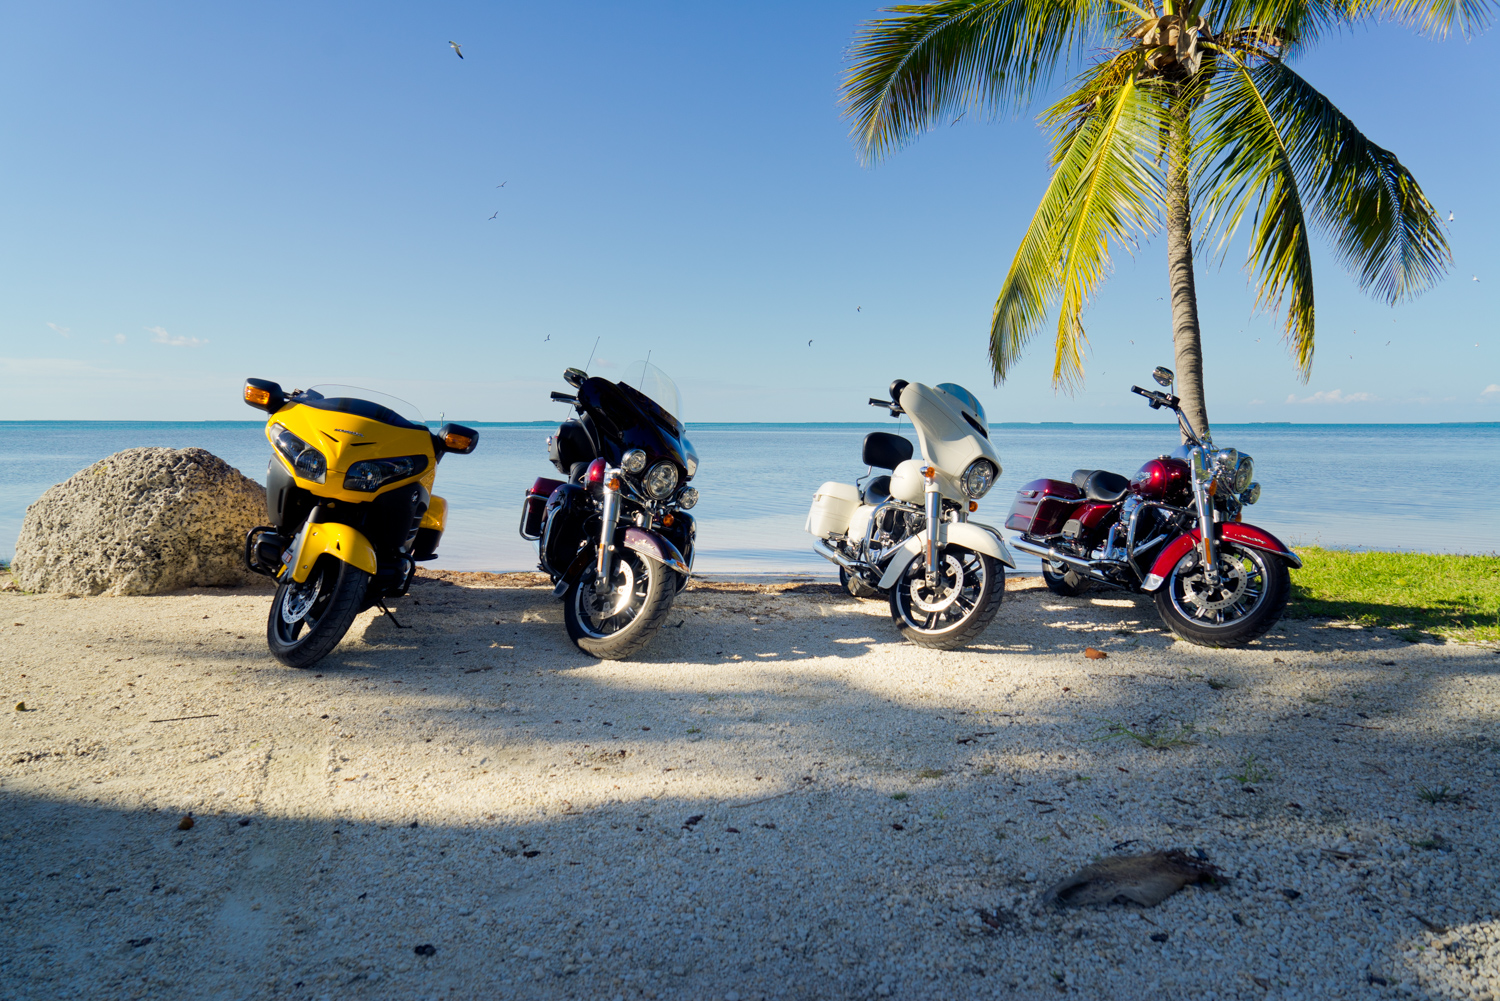 motorcycle rental fort lauderdale - harley rental fort lauderdale